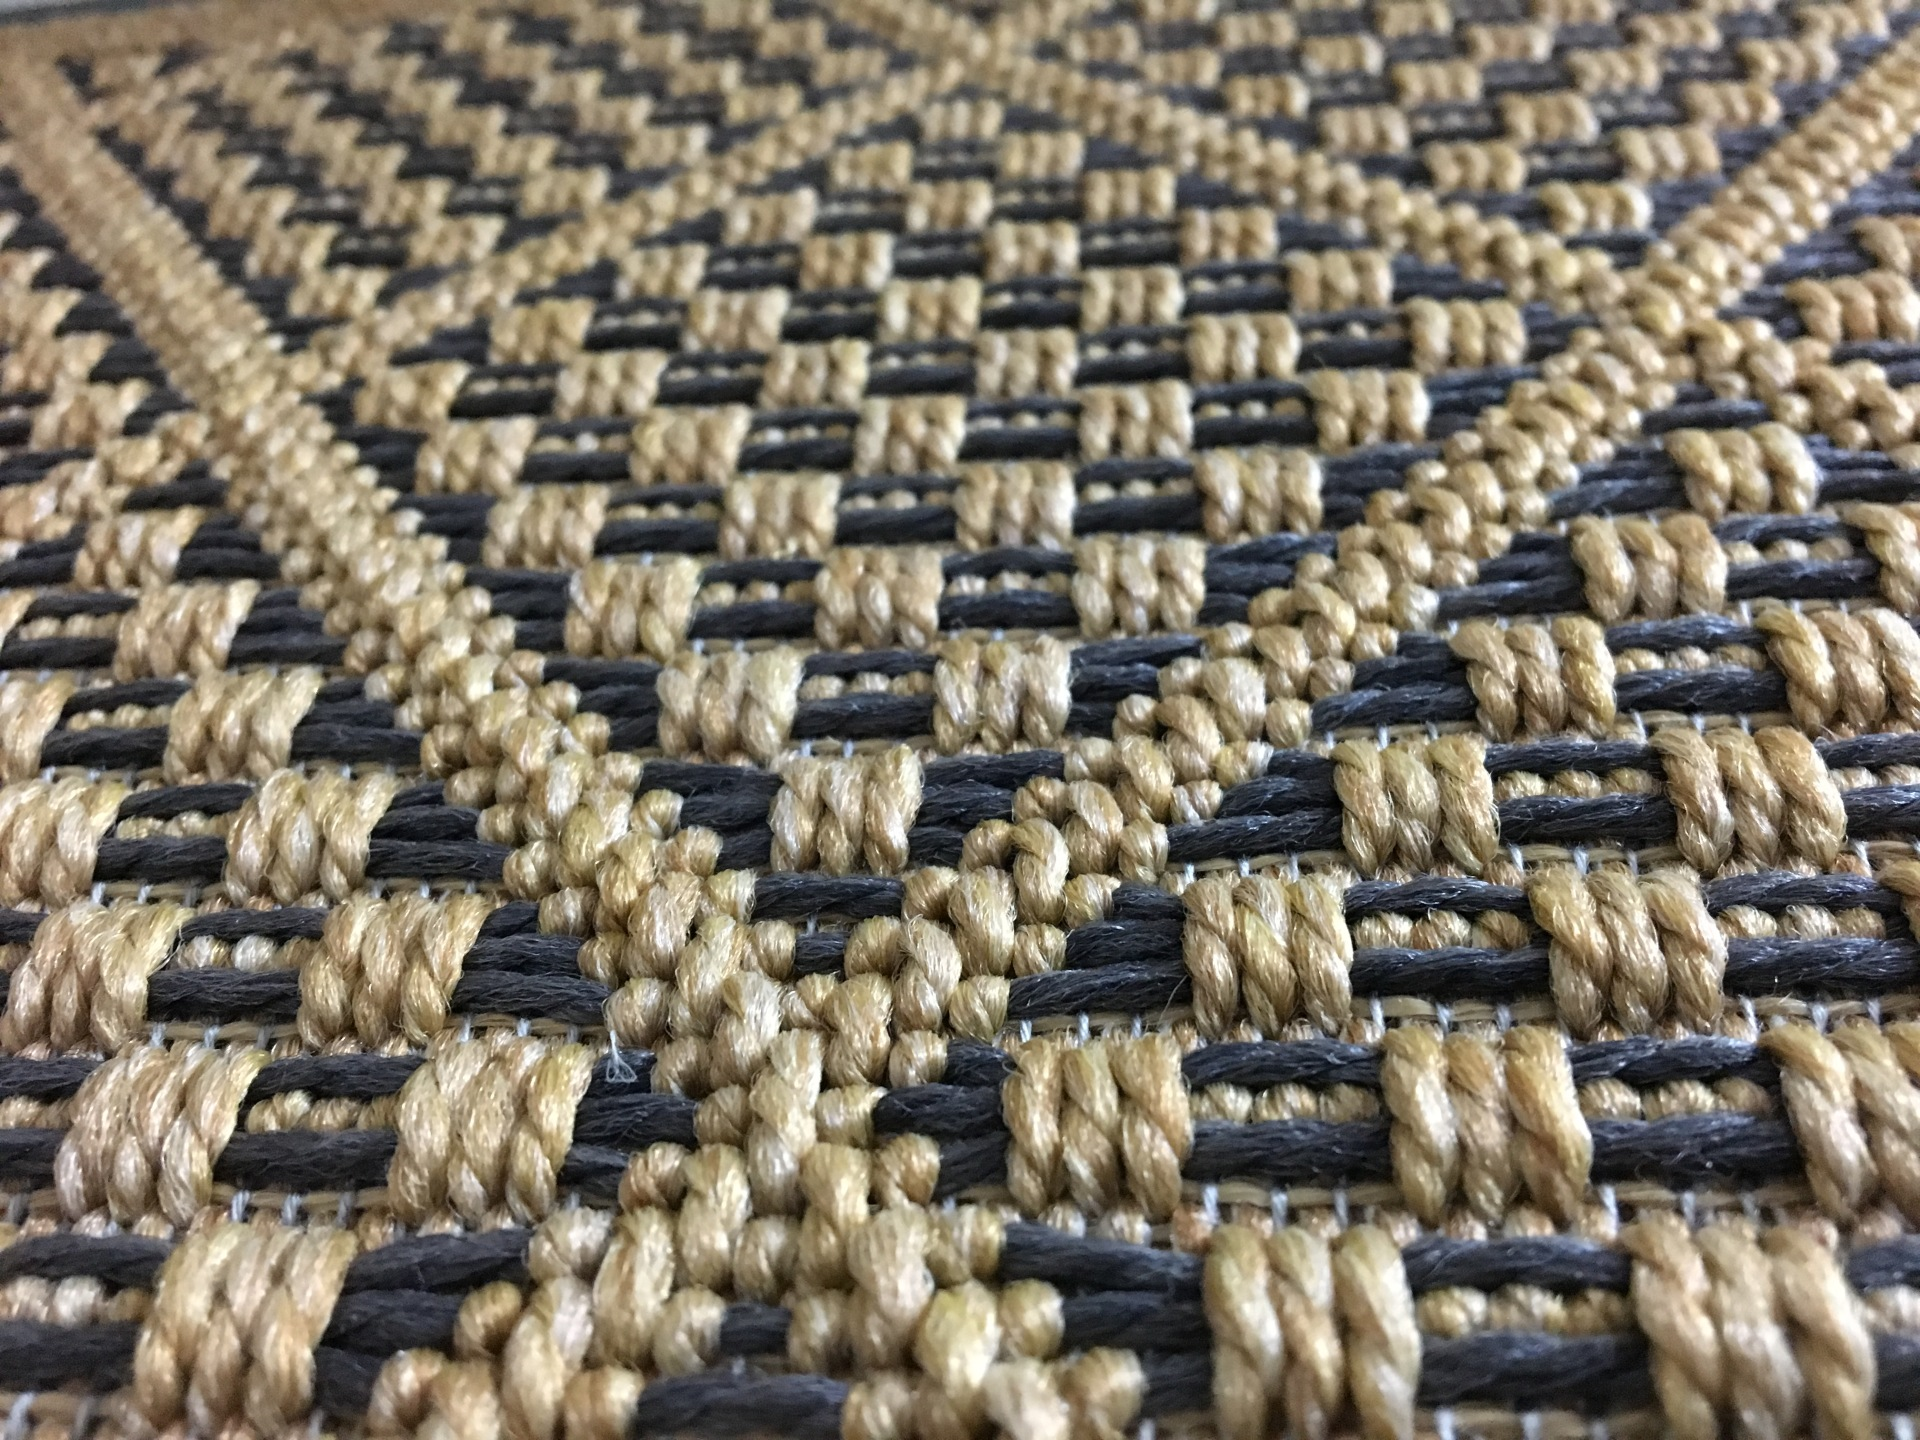 stanton, Carpet, area rugs, natural fibers, carpeting, rug, wall to wall carpet, plush, thick, comfortable, soft, clean carpet